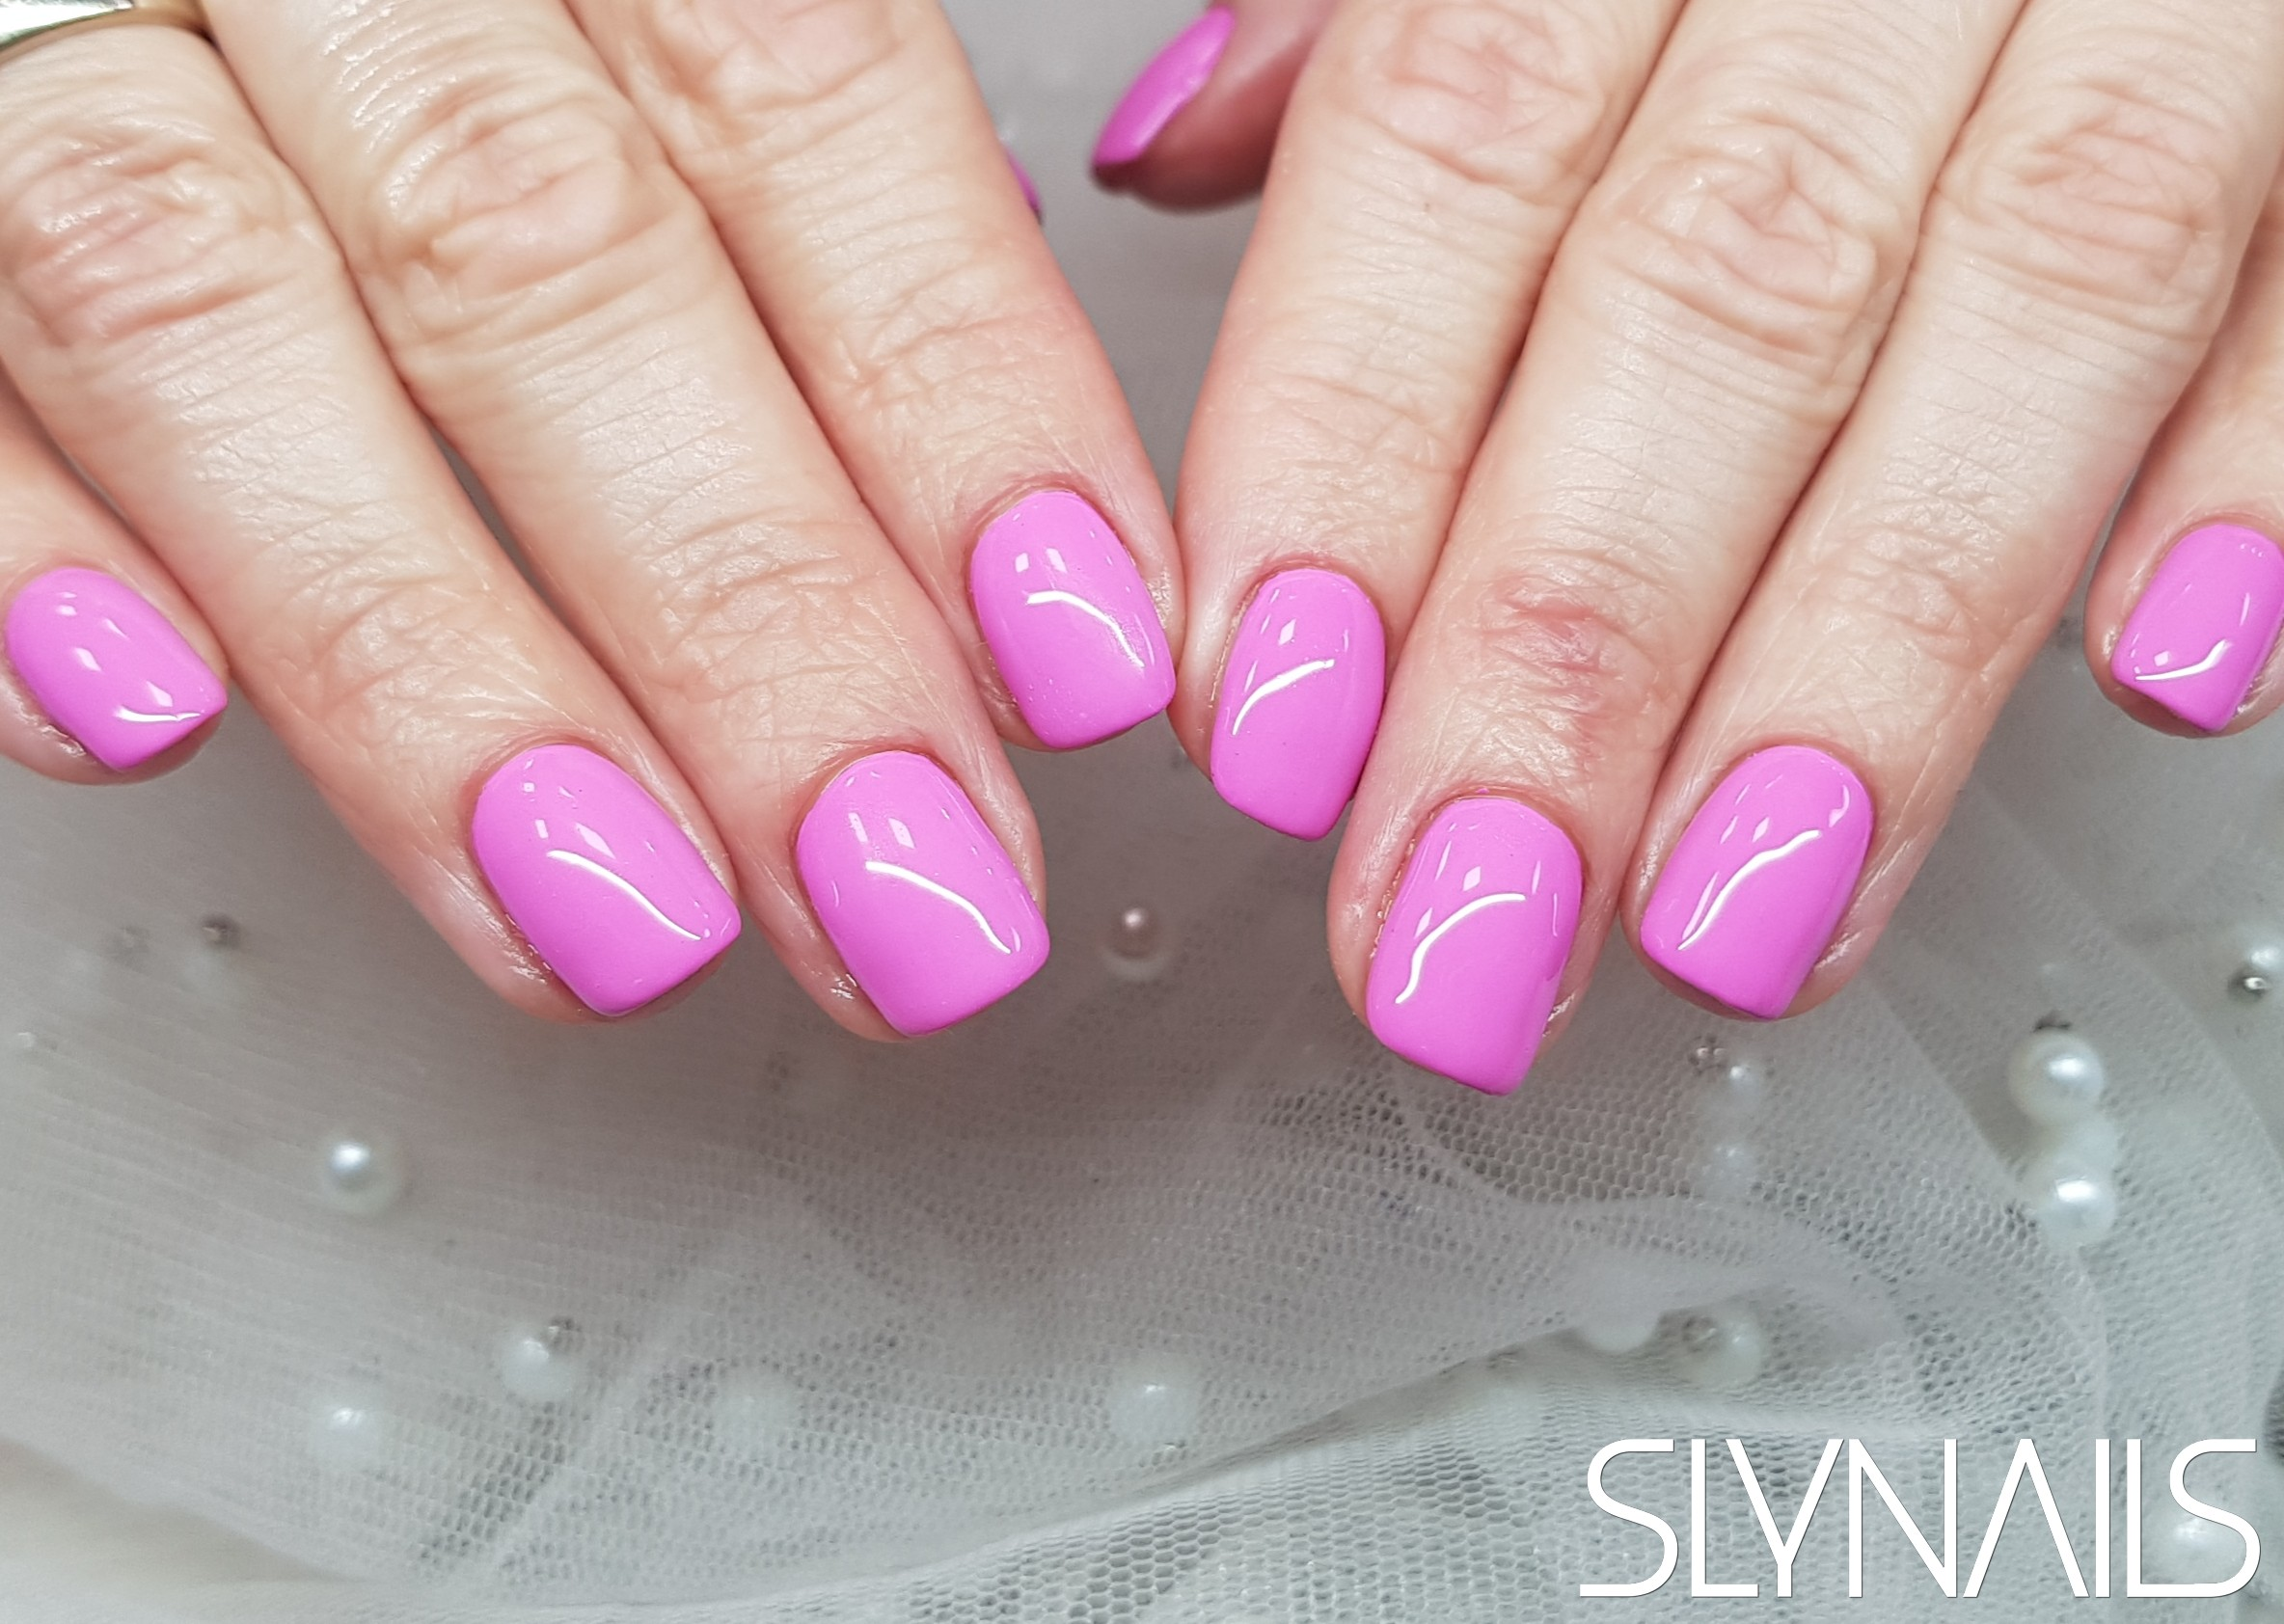 Gel-lac (gel polish), Pink, Square, One color, Without decoration